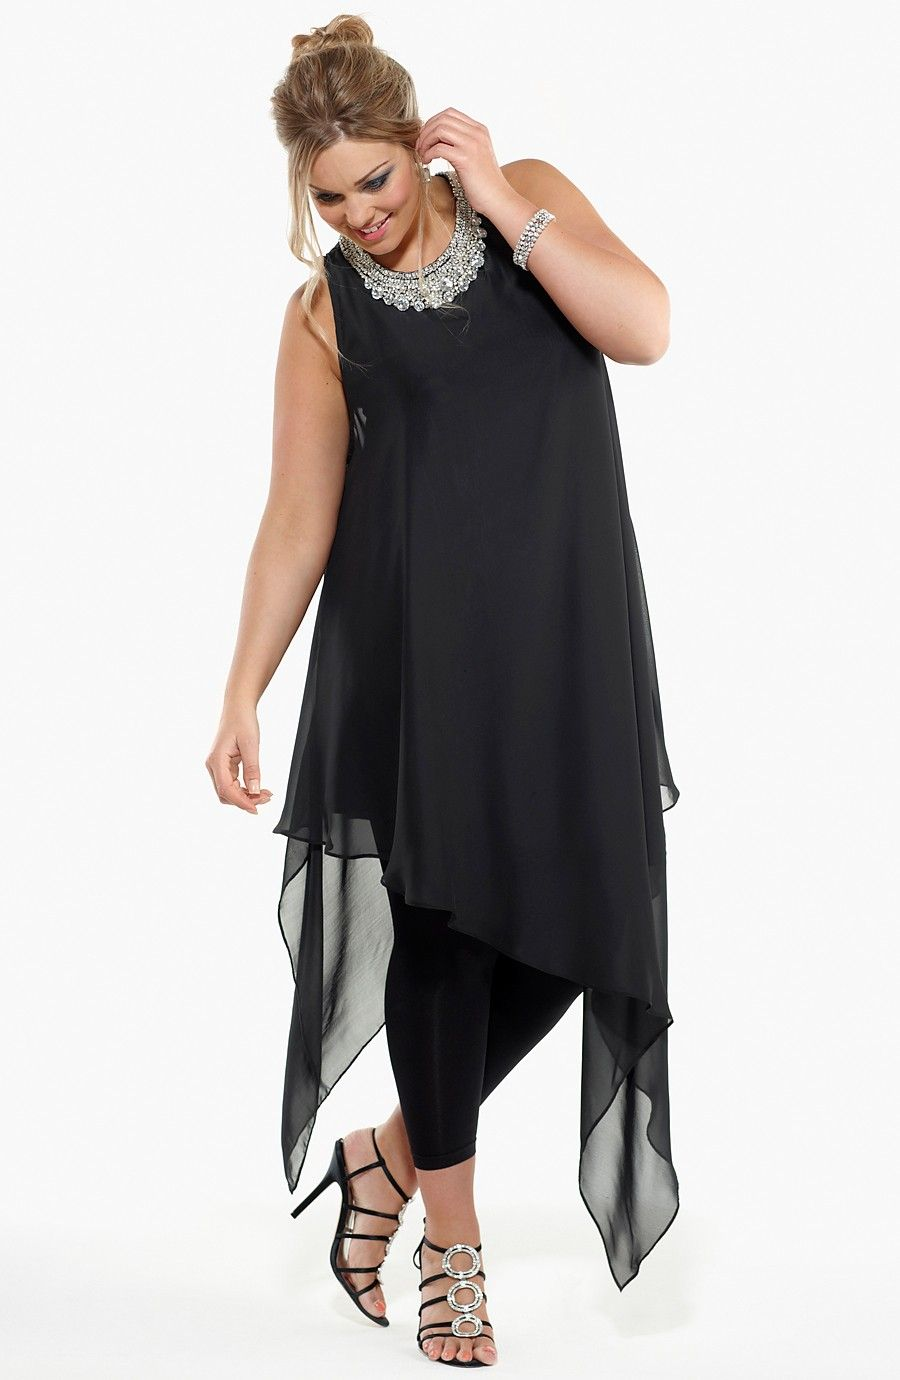 Diamante evening tunic evening dresses dream diva plus size